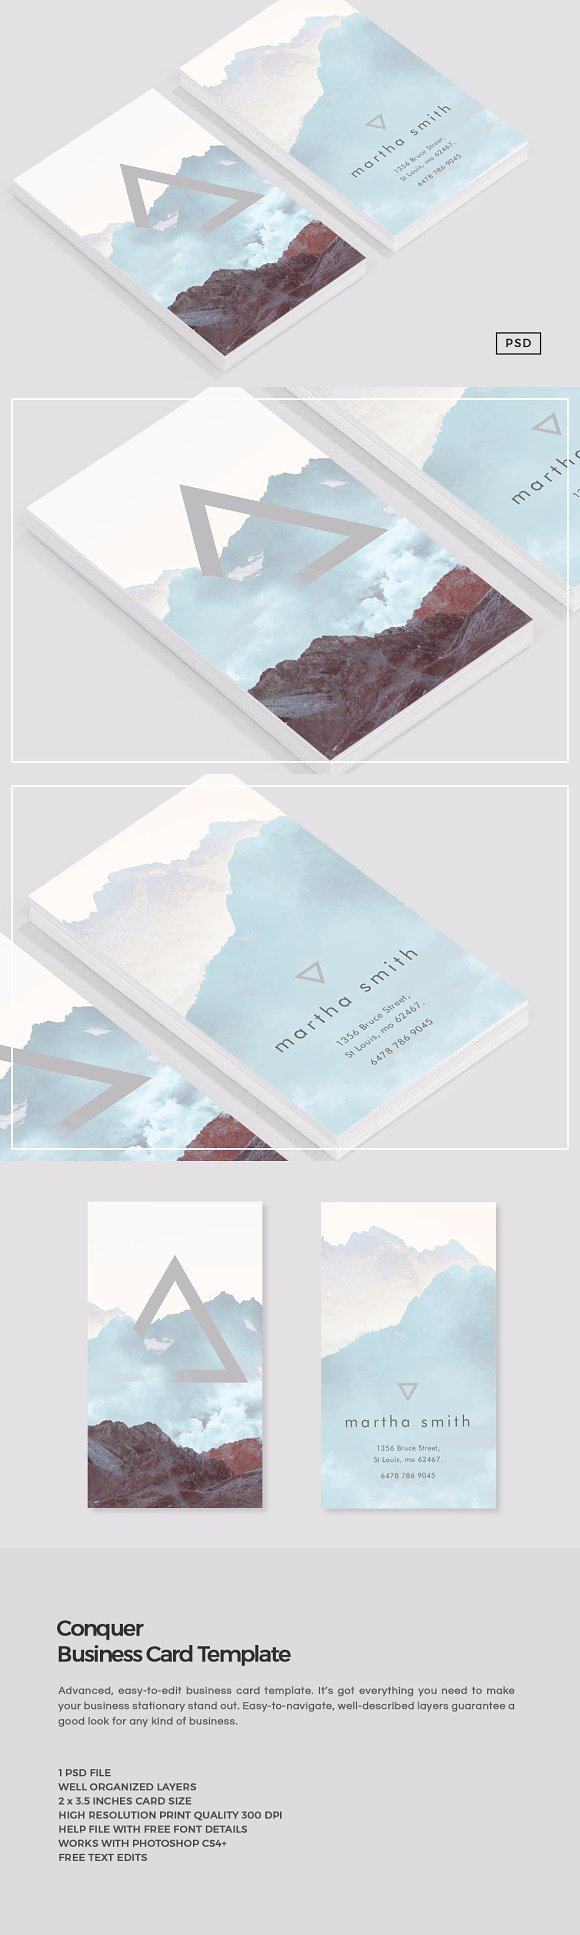 labels business cards templates - Roho.4senses.co